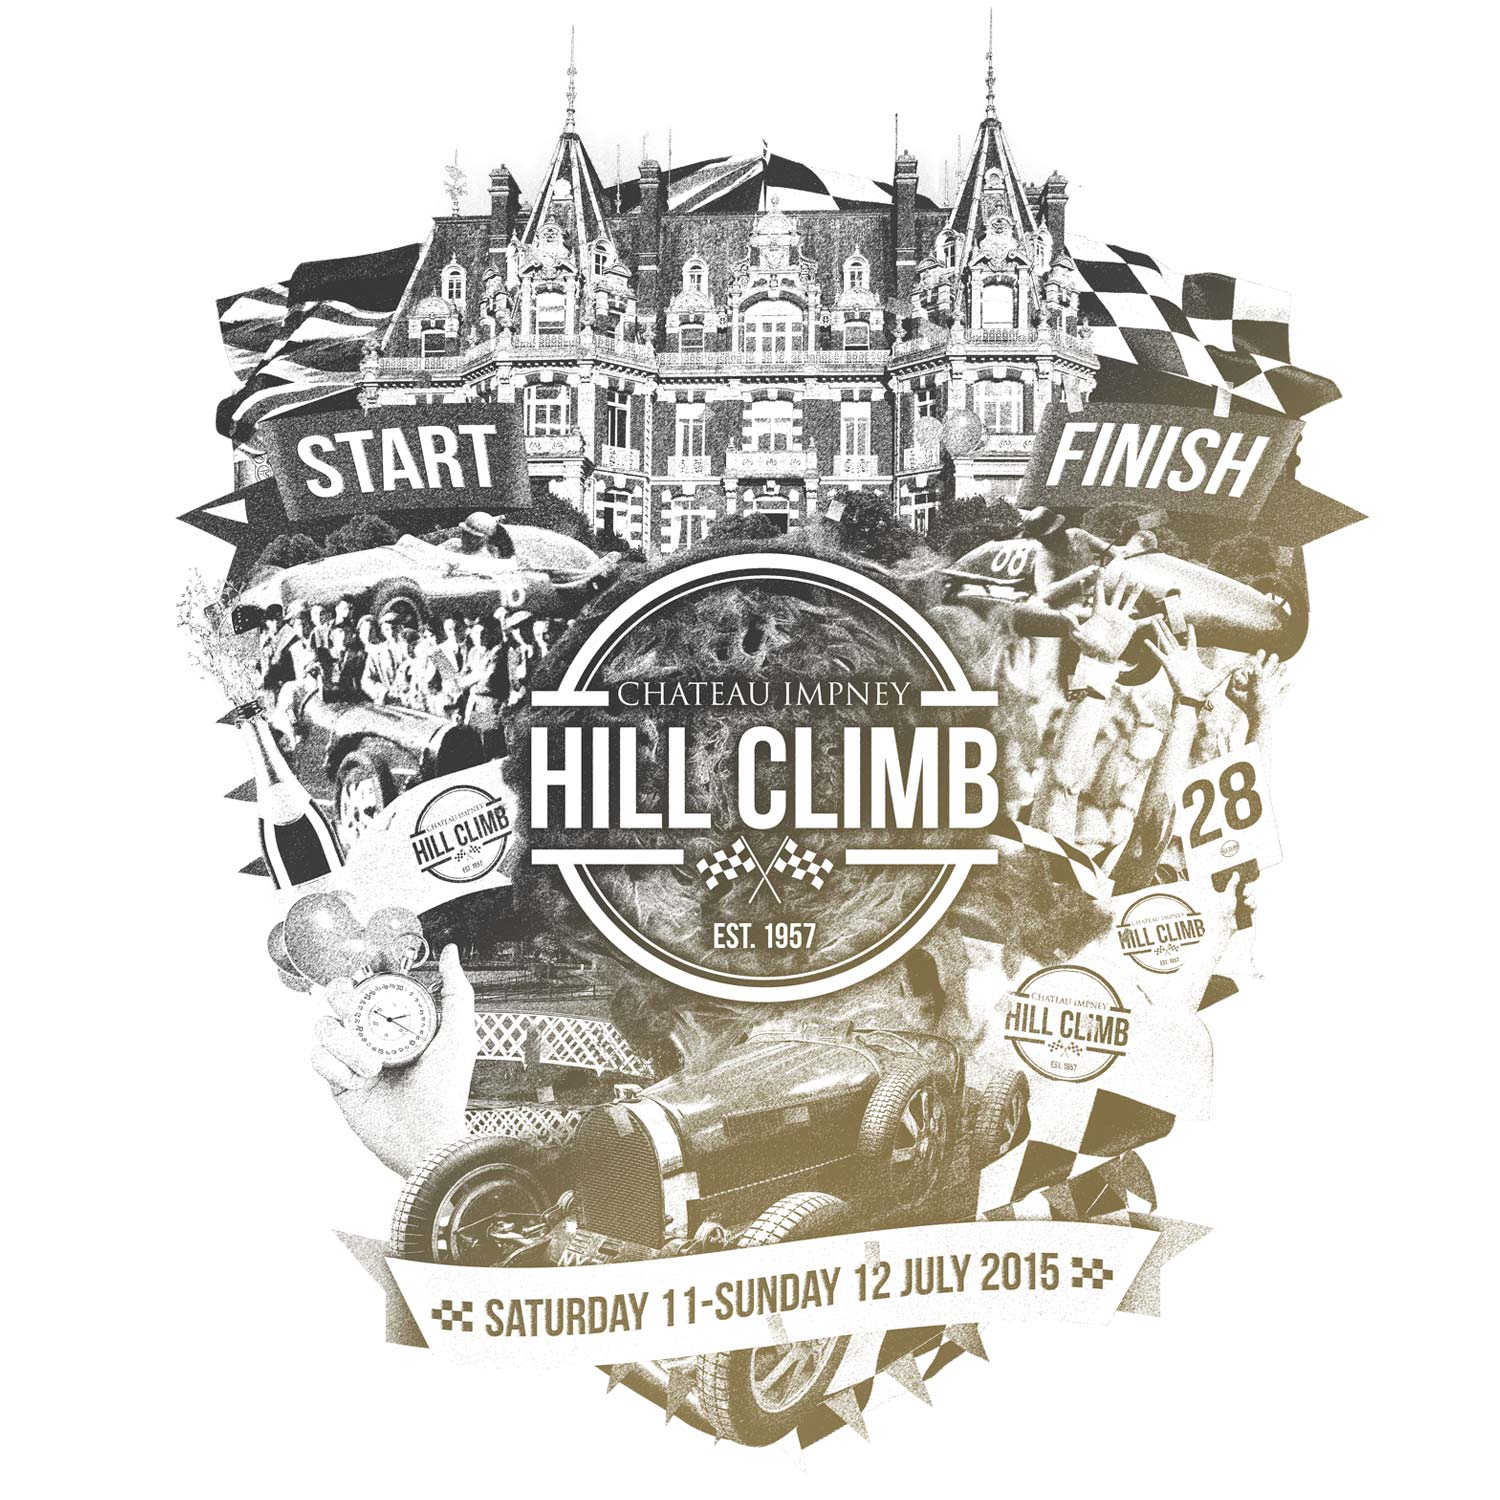 Chateau Impney Hill Climb logo development by Mighty, marketing agency Worcester